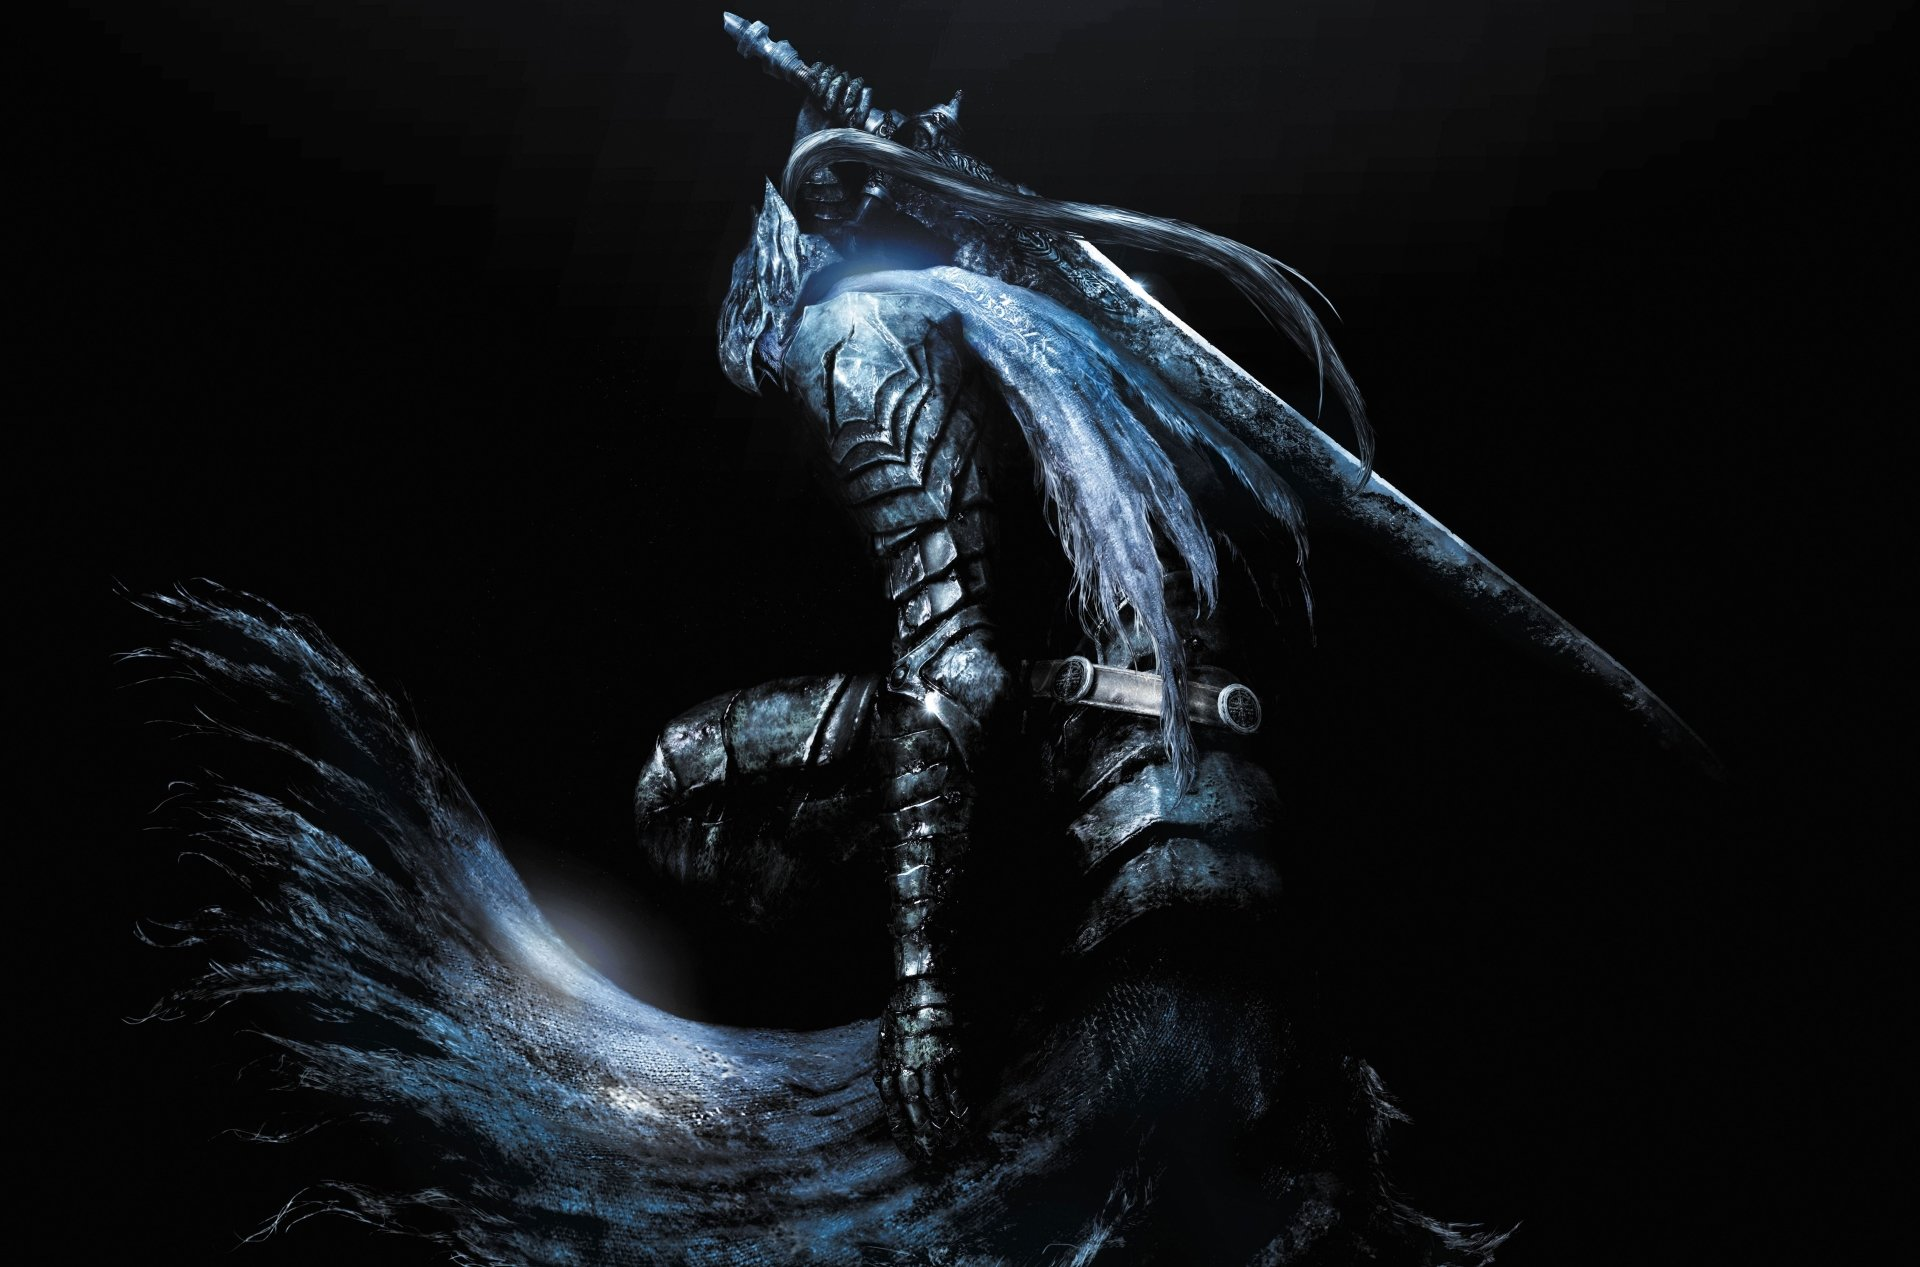 Jeux Vidéo - Dark Souls  The Abyss walker Artorias Of The Abyss Artorias (Dark Souls) Fond d'écran